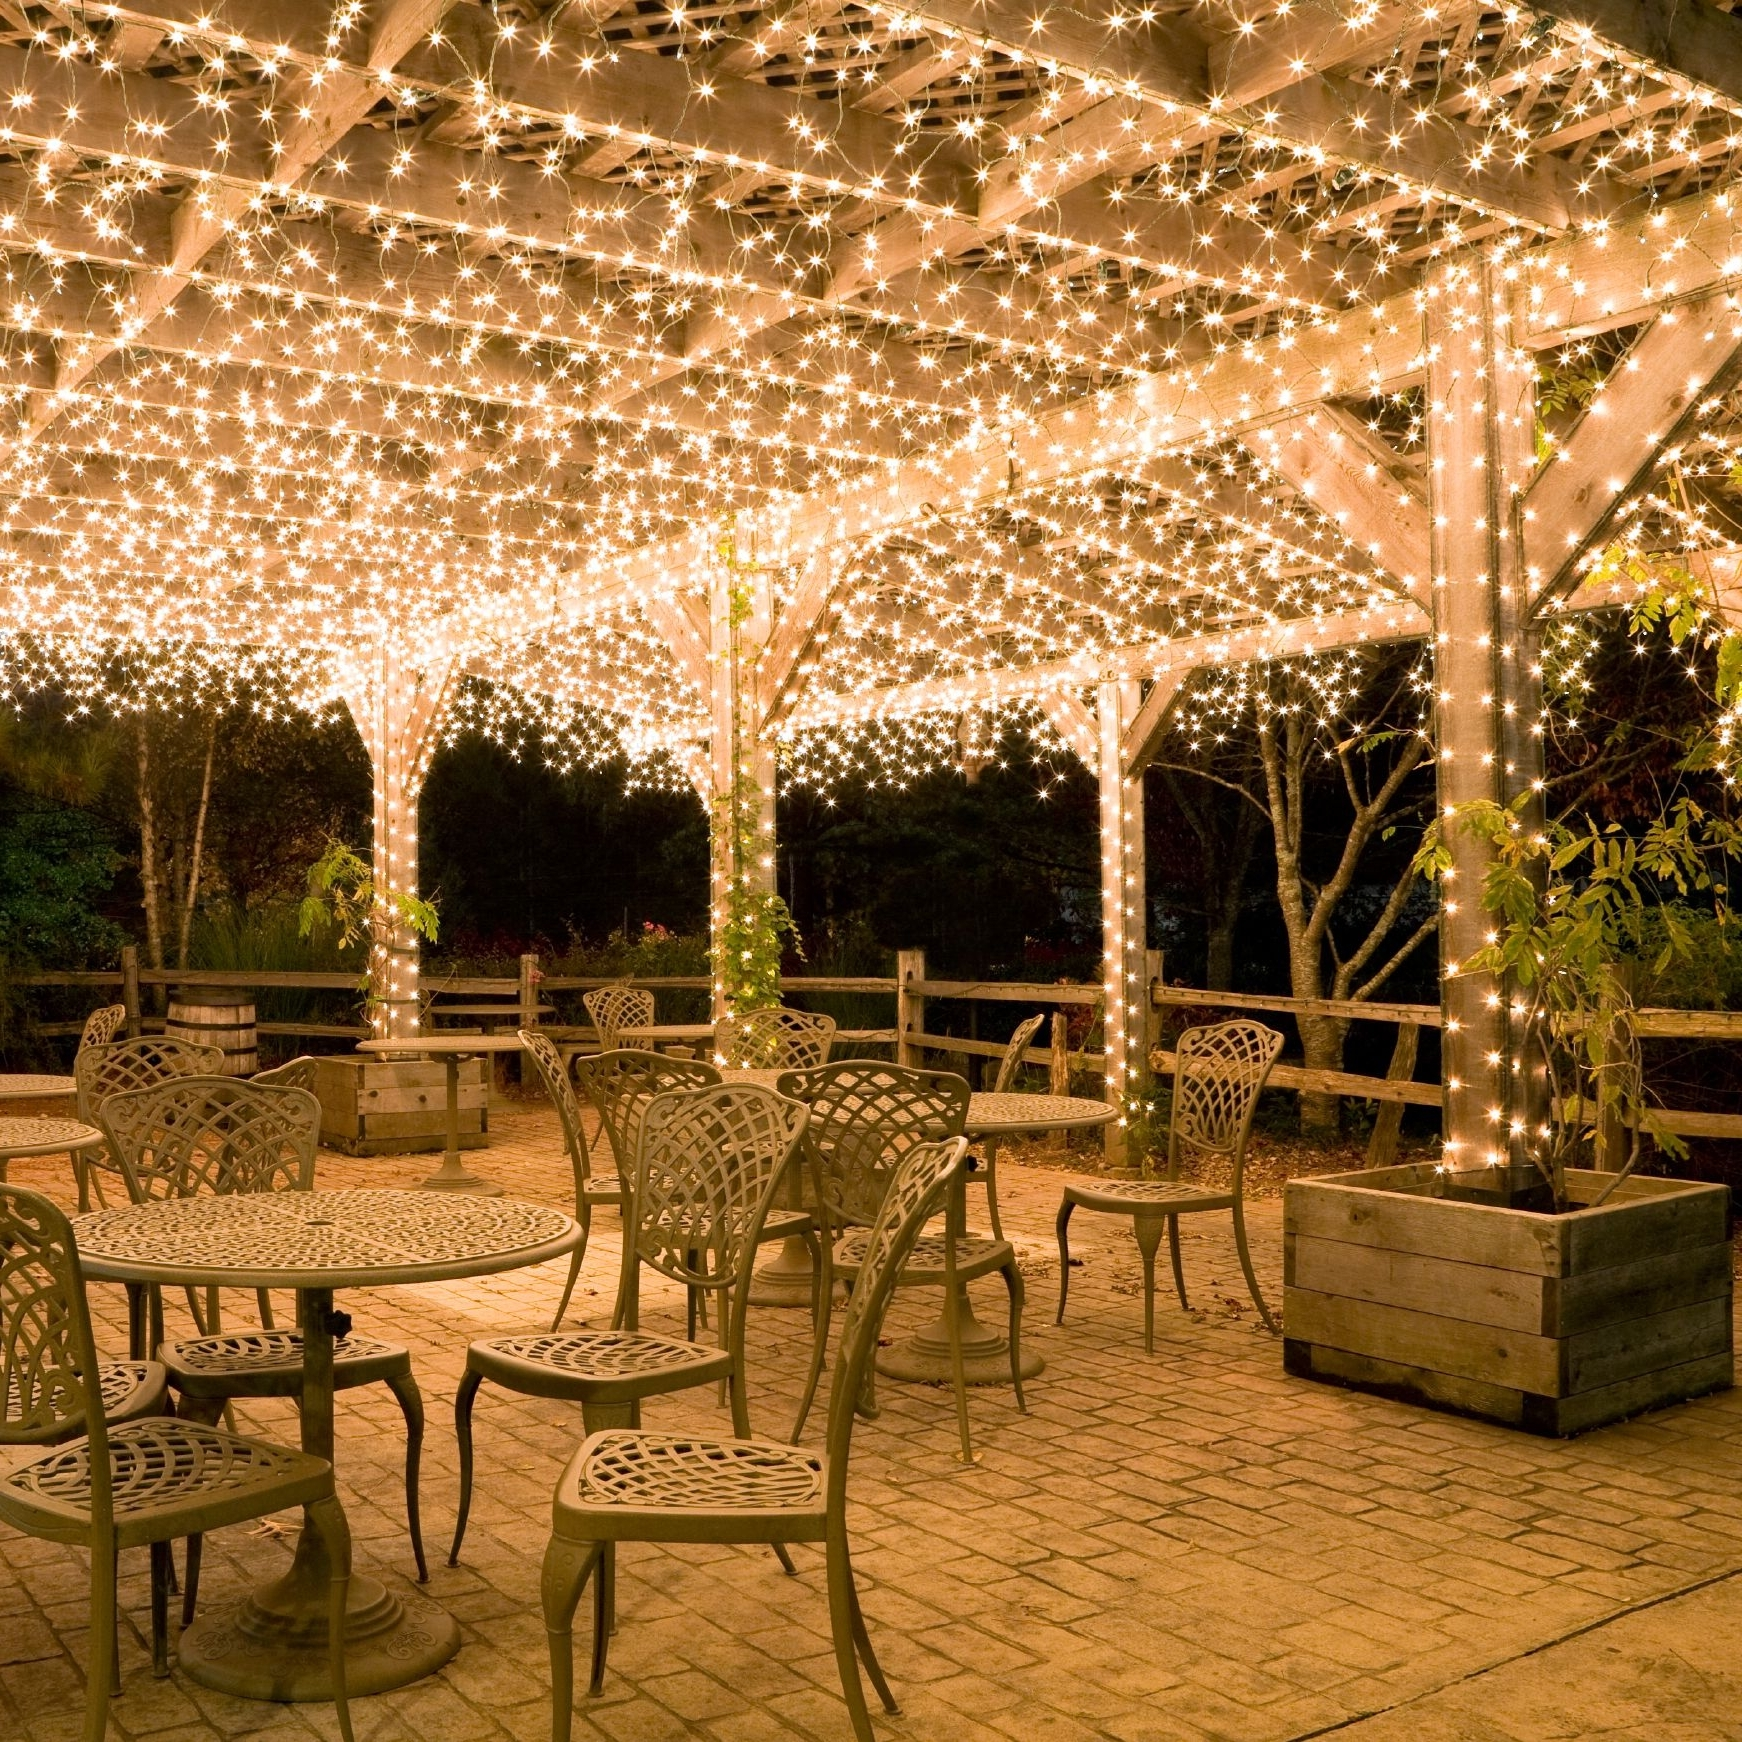 Outdoor Hanging Deck Lights Inside Widely Used Hang White Icicle Lights To Create Magical Outdoor Lighting (View 16 of 20)